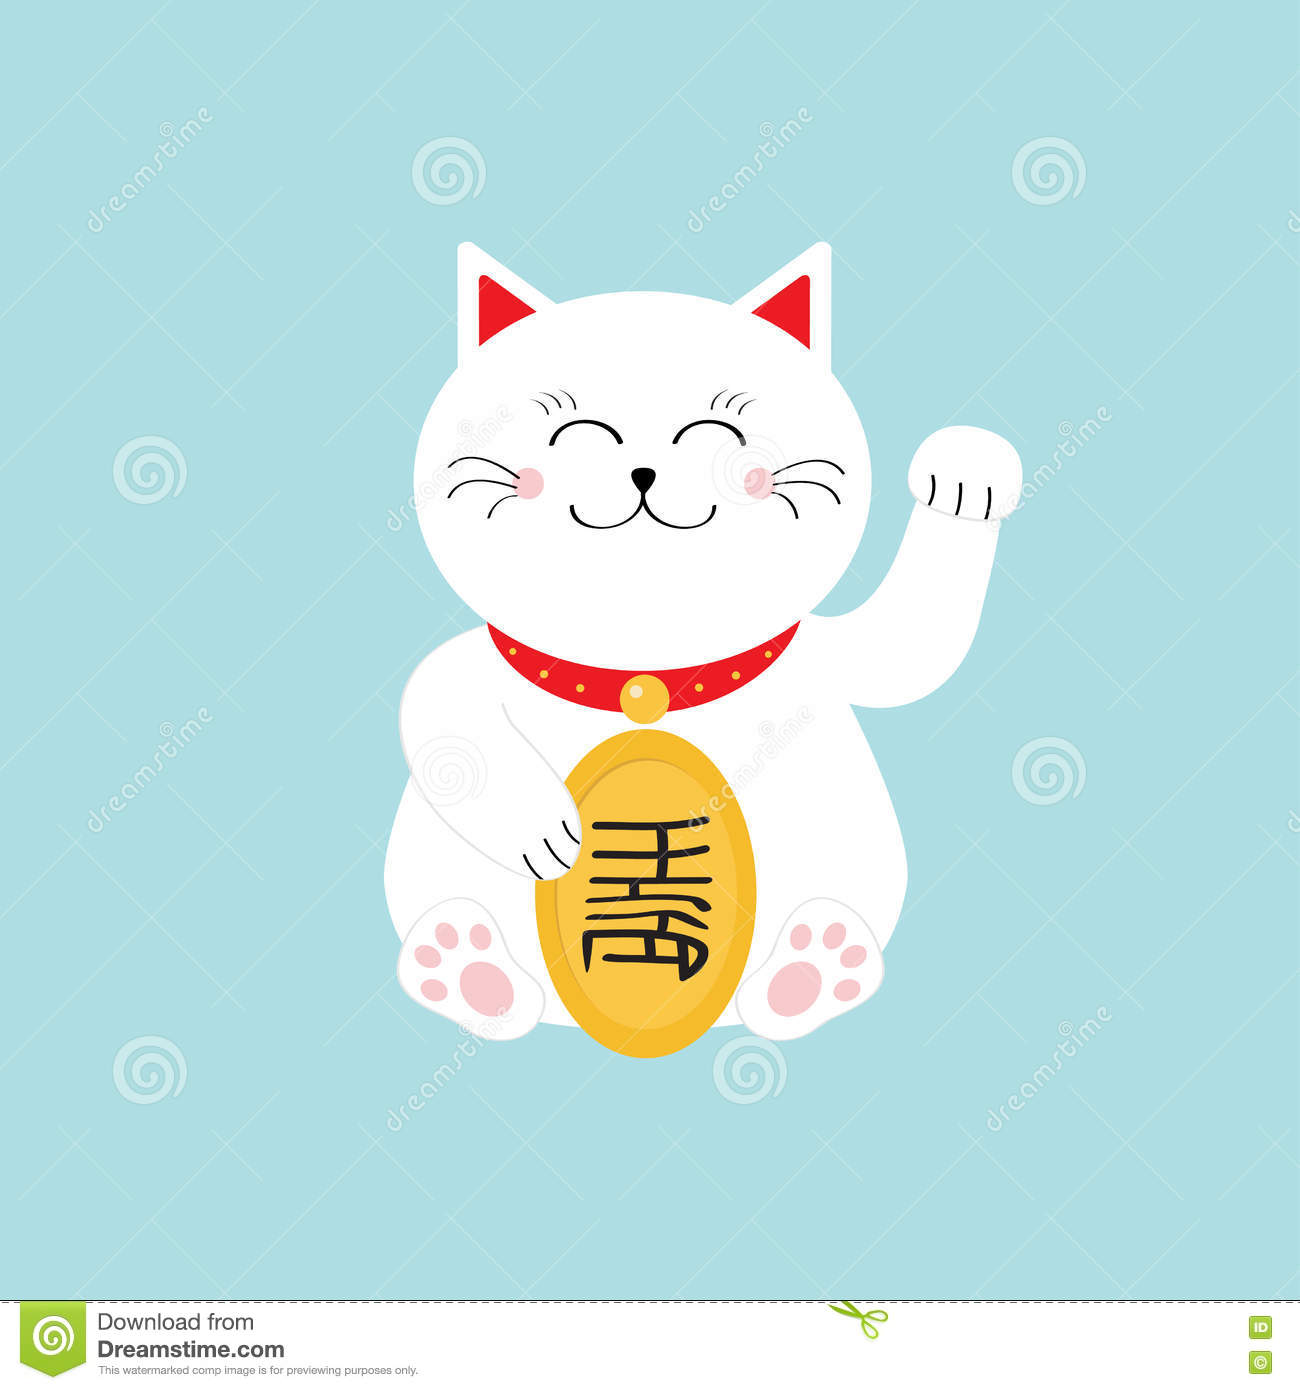 Lucky Cat Sitting And Holding Golden Coin Japanese Maneki Neco Cat